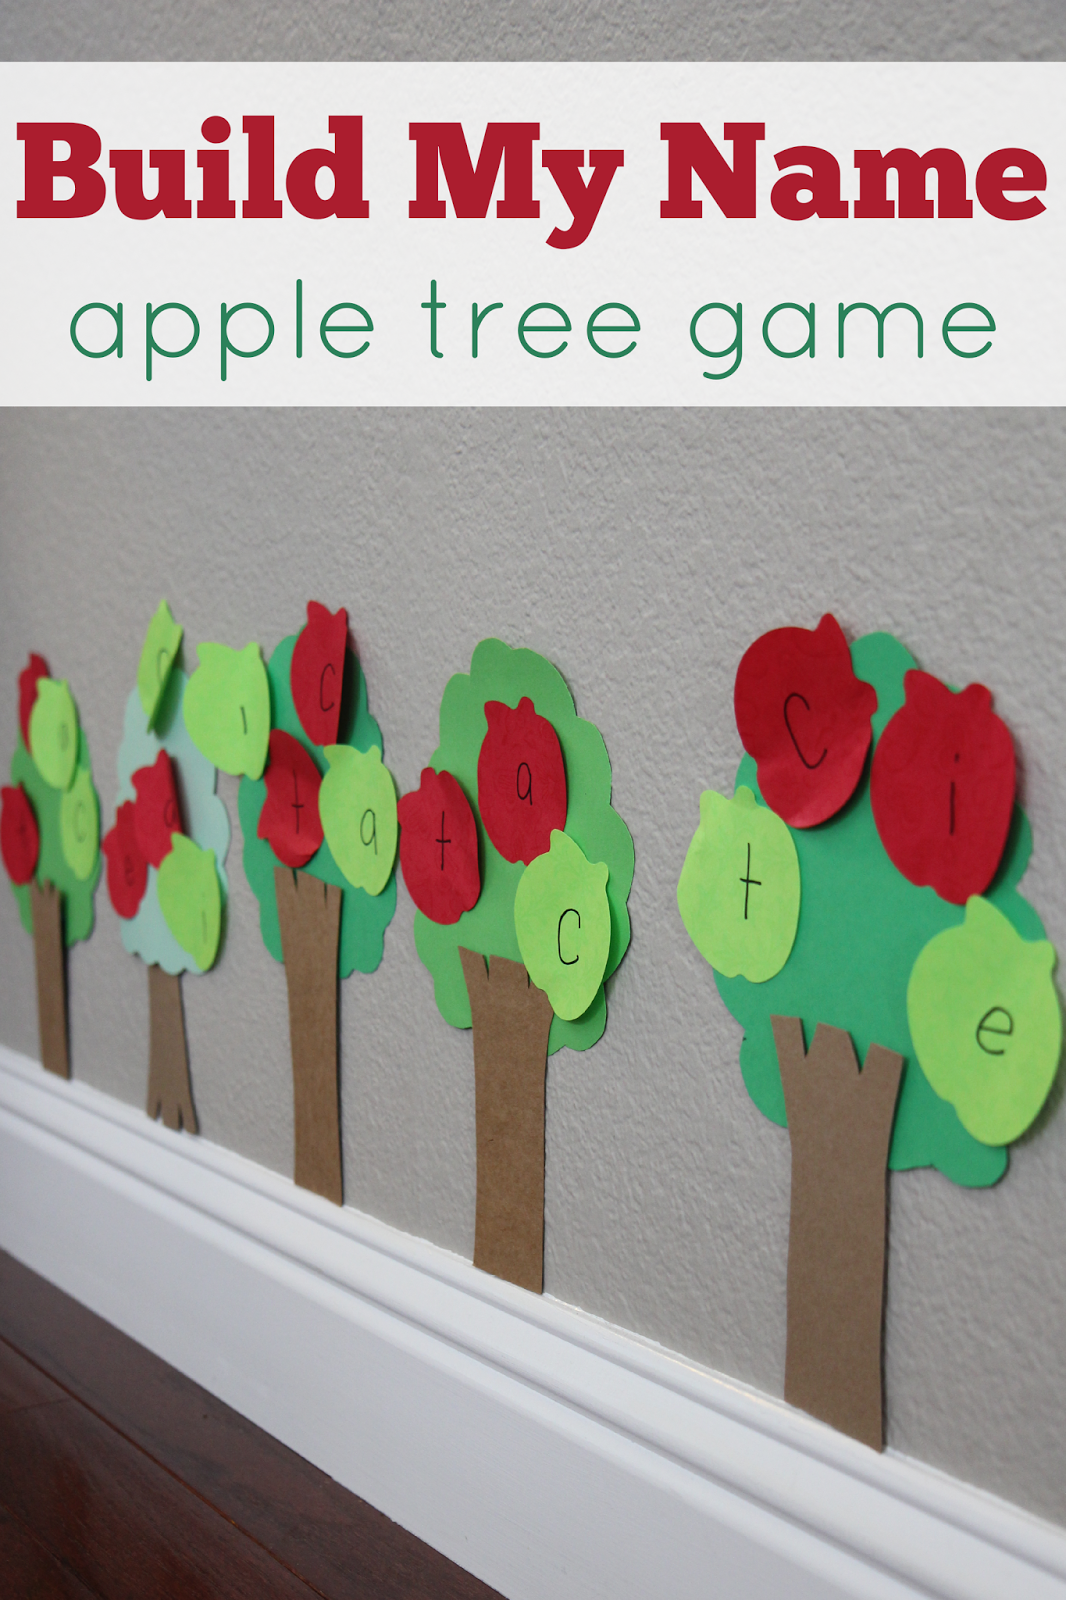 Build My Name Apple Tree Game Apples Gaming And Activities